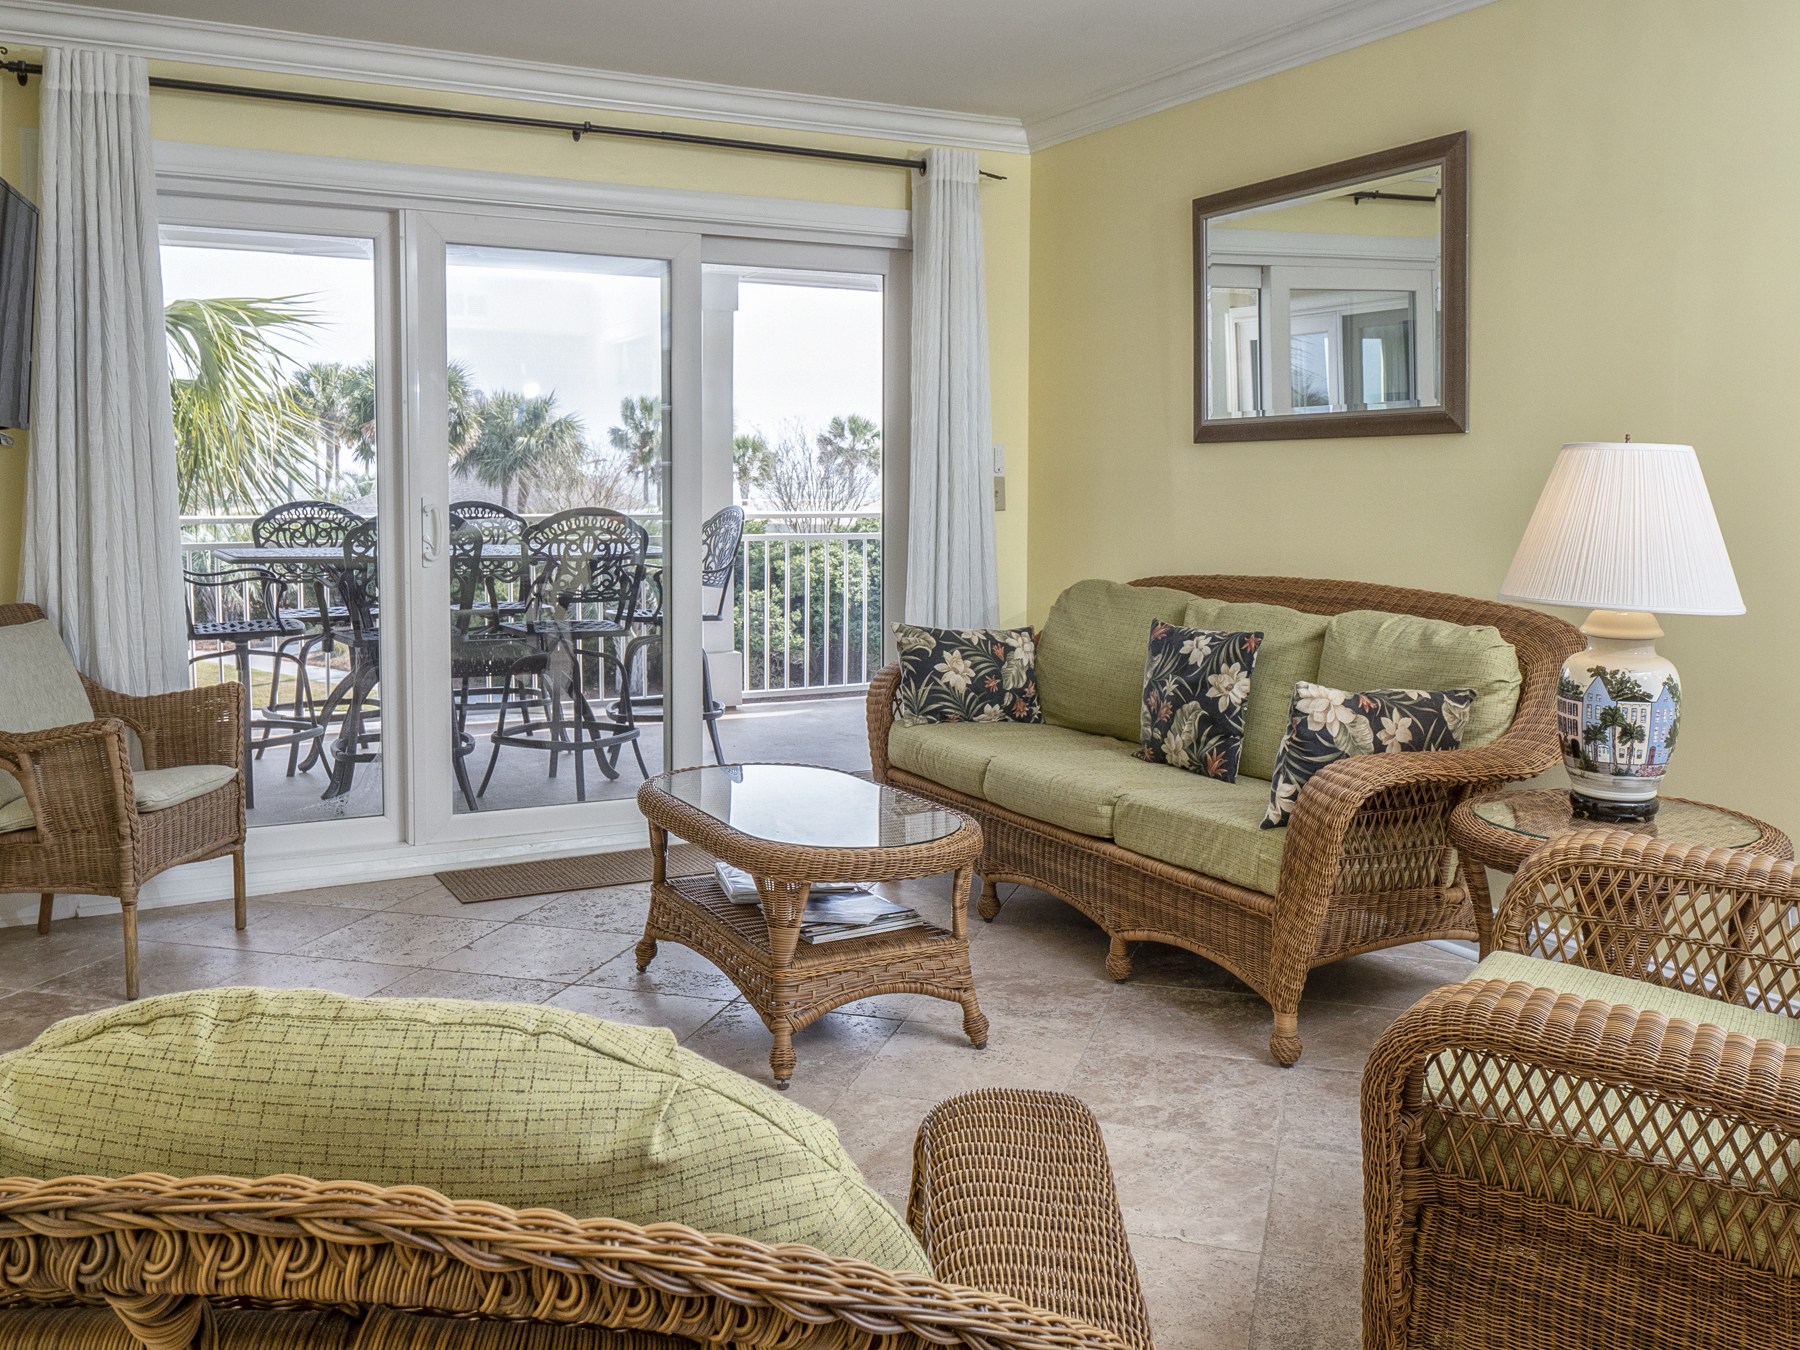 Sliding doors to the deck highlight the natural beauty of Seabrook